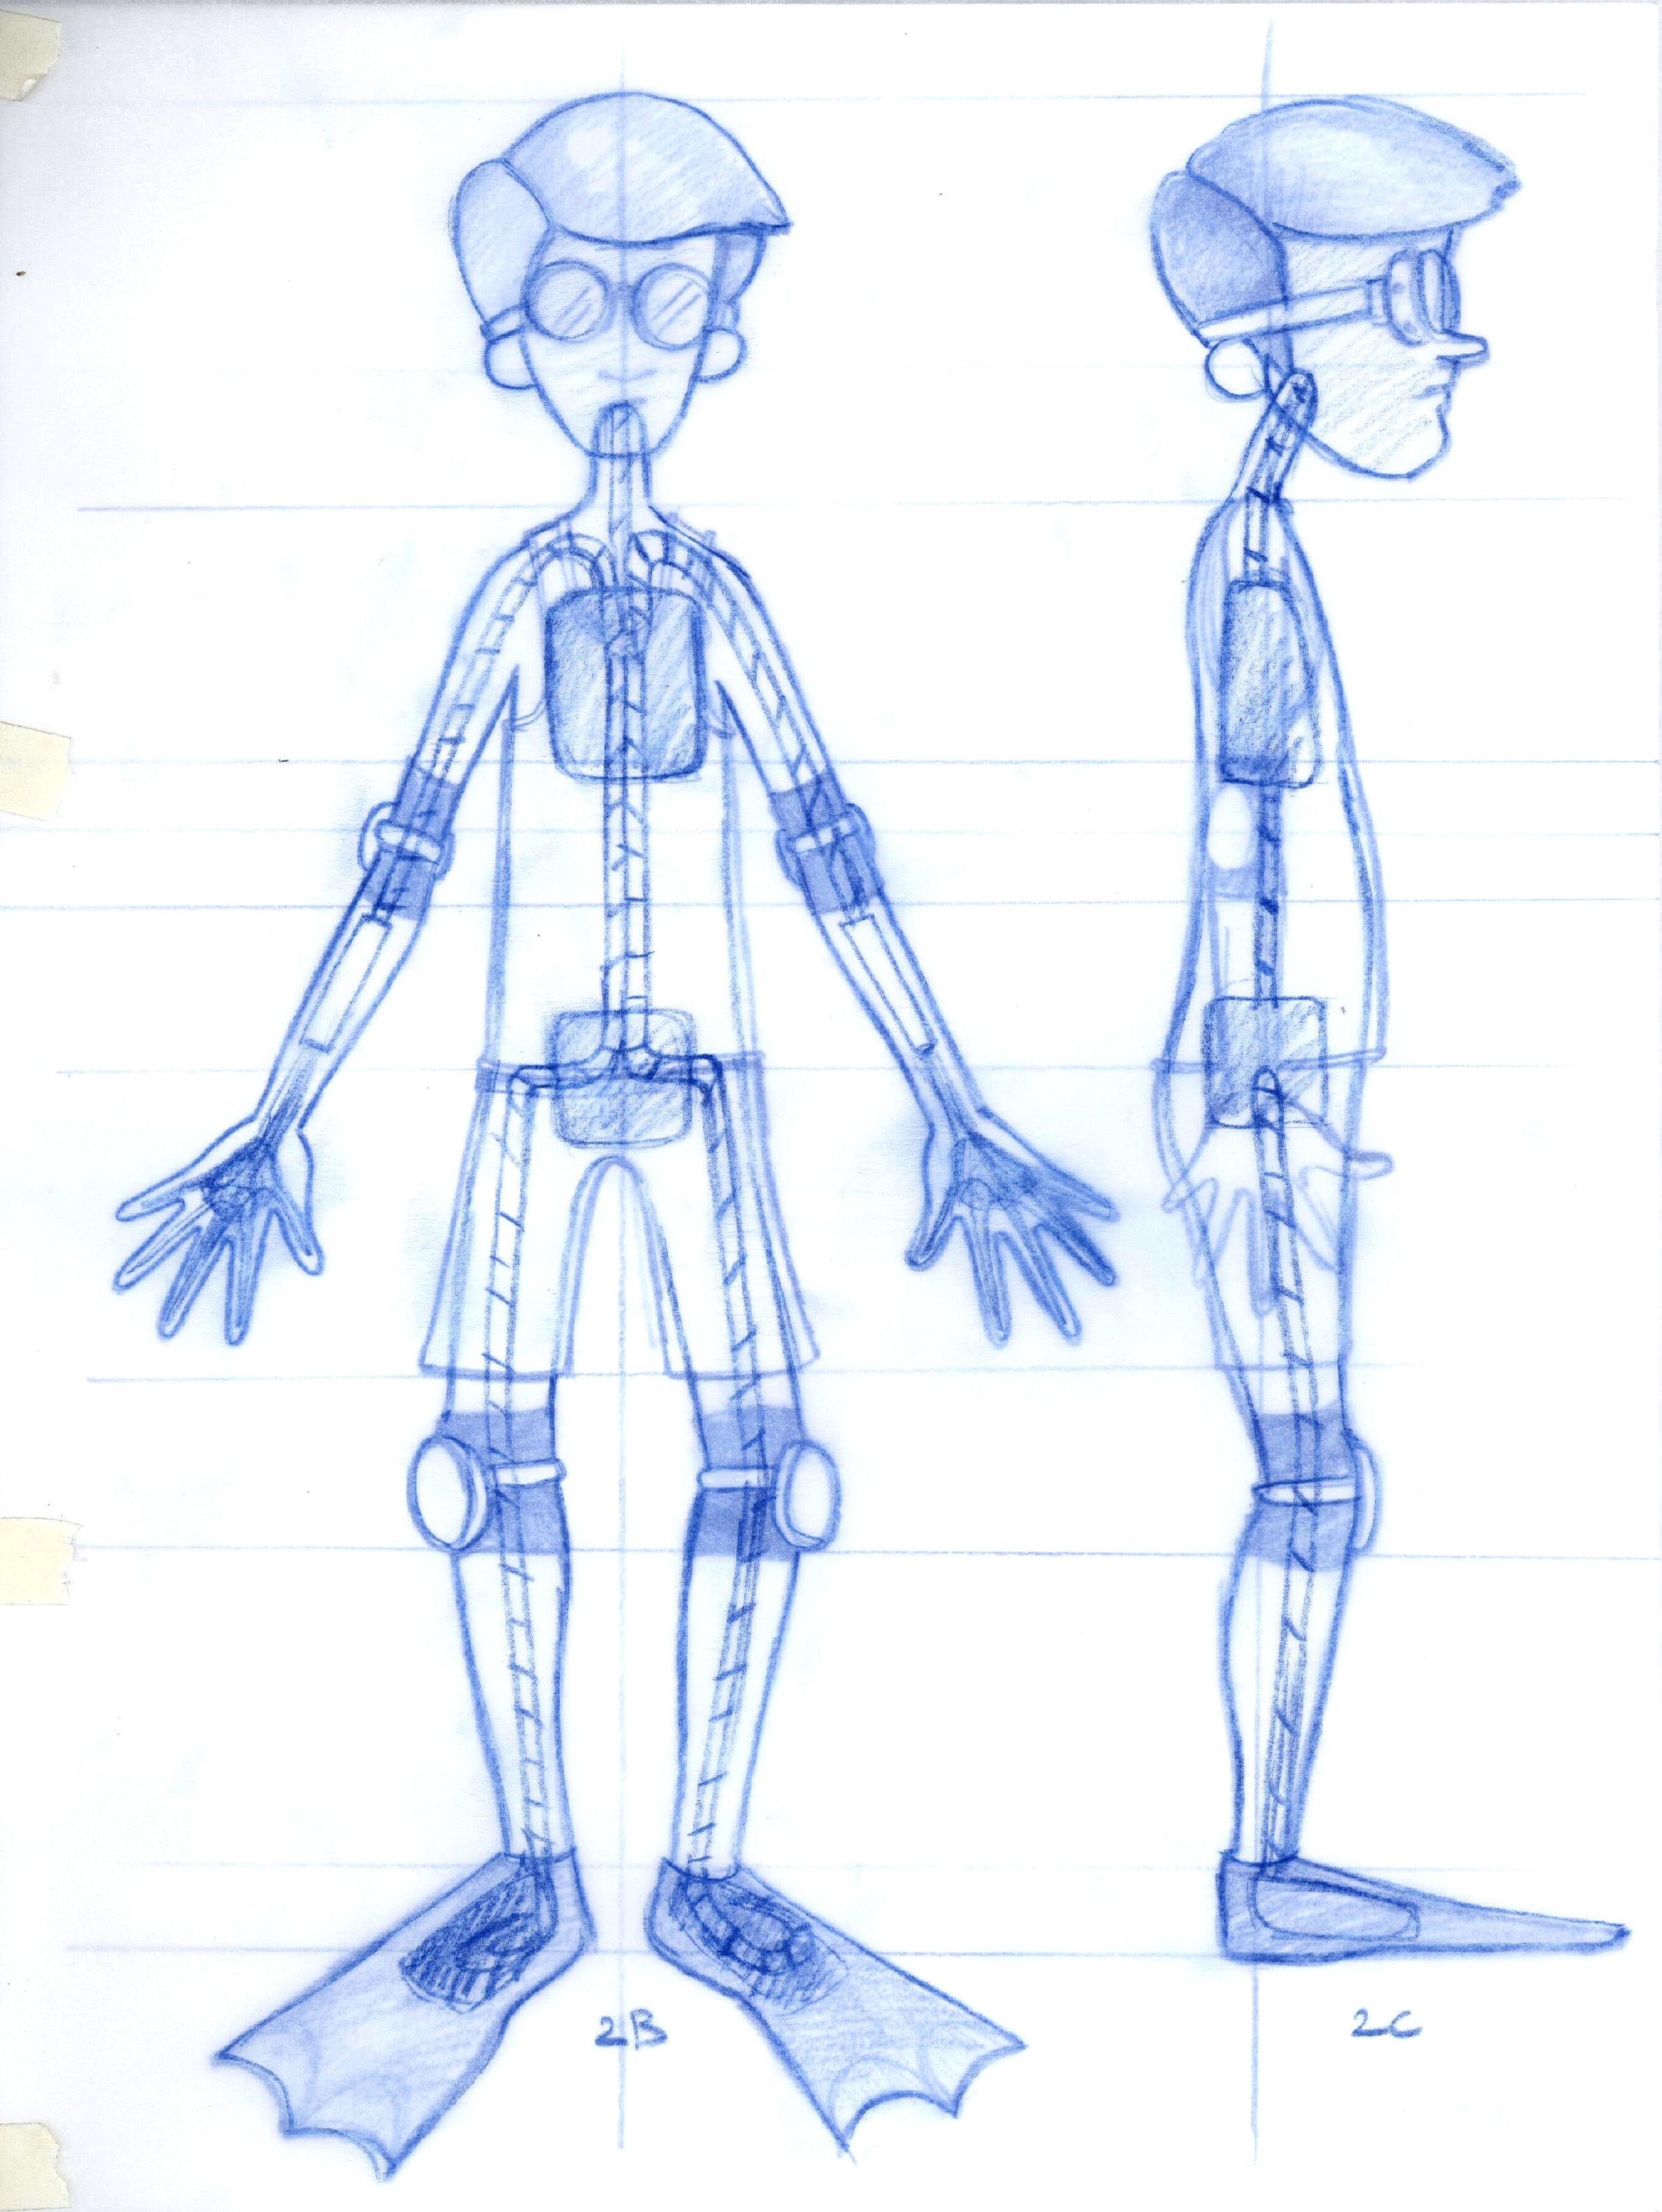 Diver character design and armature drawing.